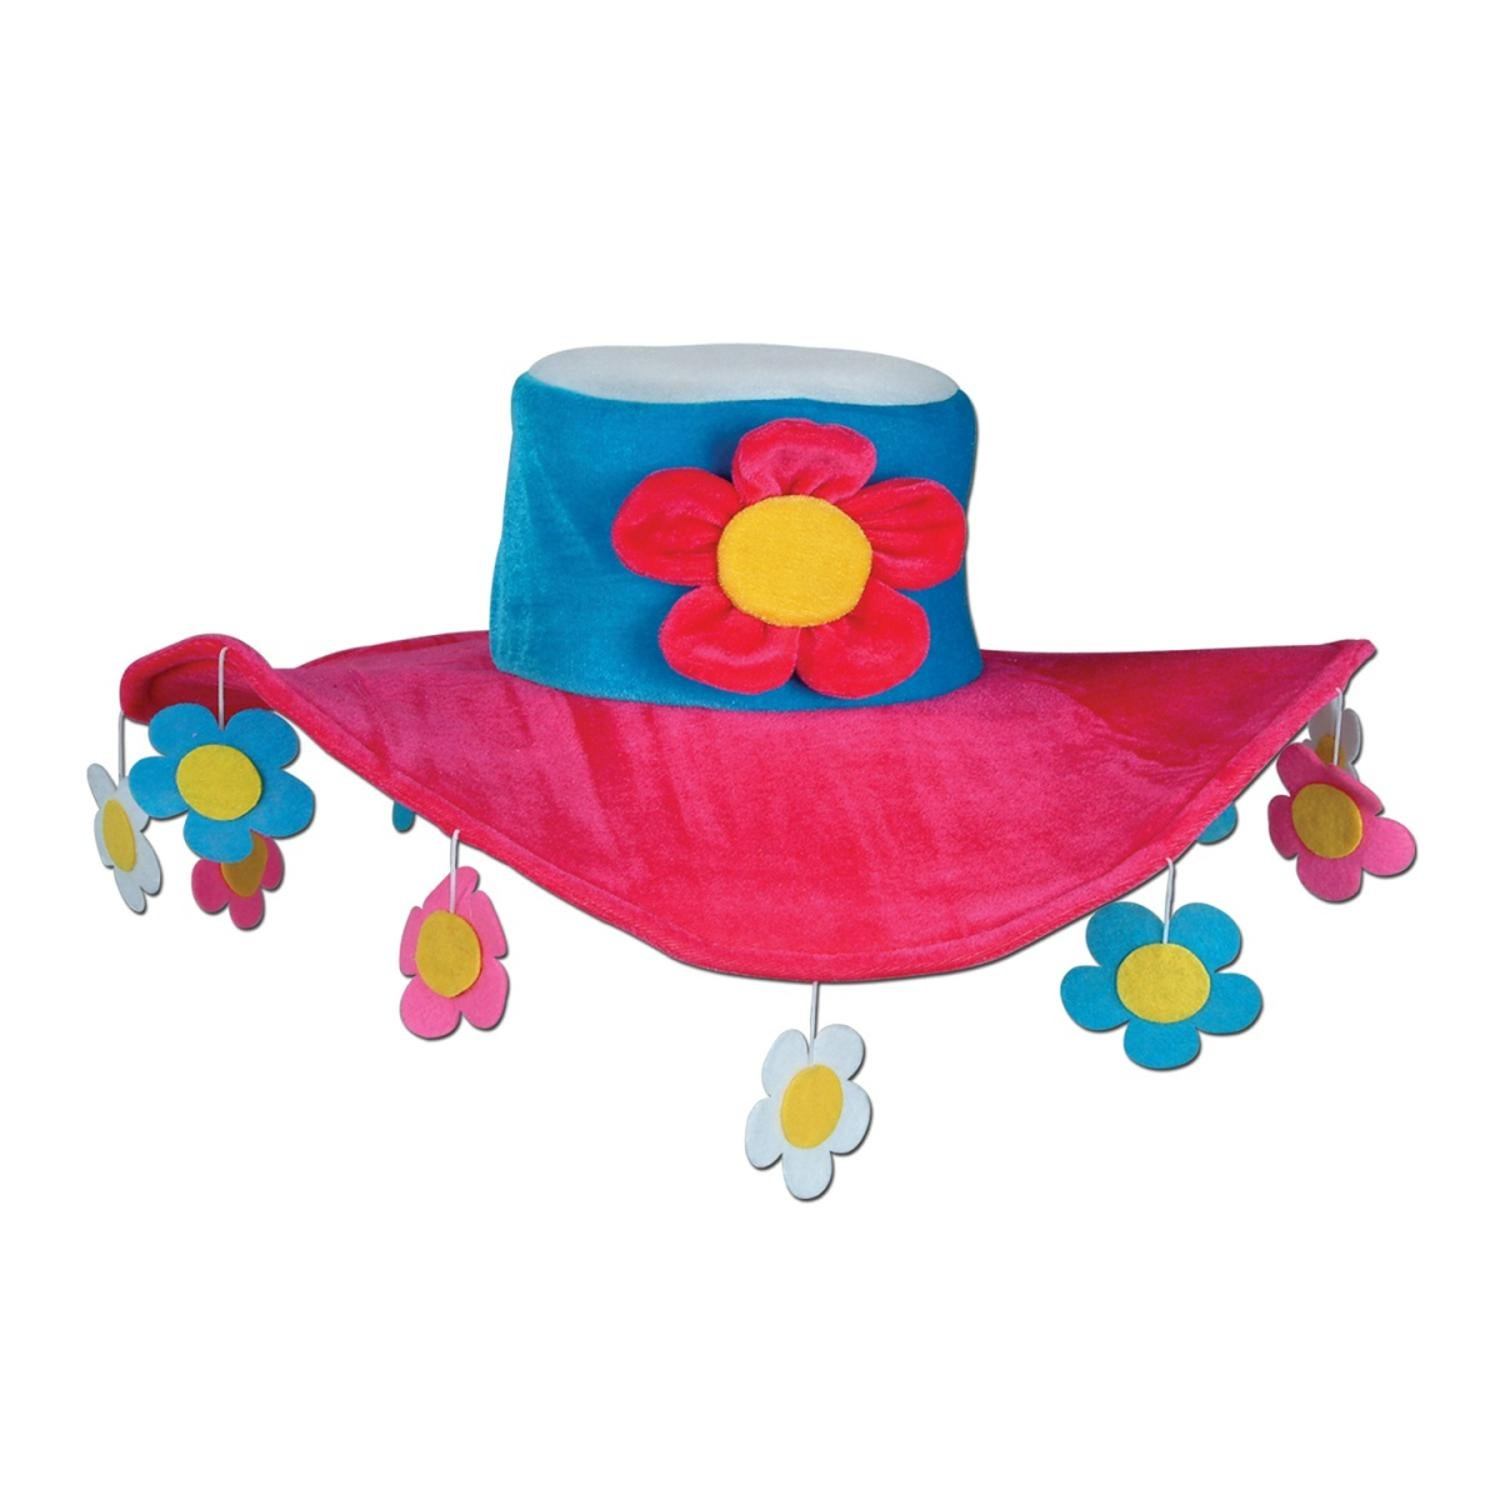 Club Pack of 6 Pink Blue Yellow and White 60's Inspired Plush Flower Power Party Hats